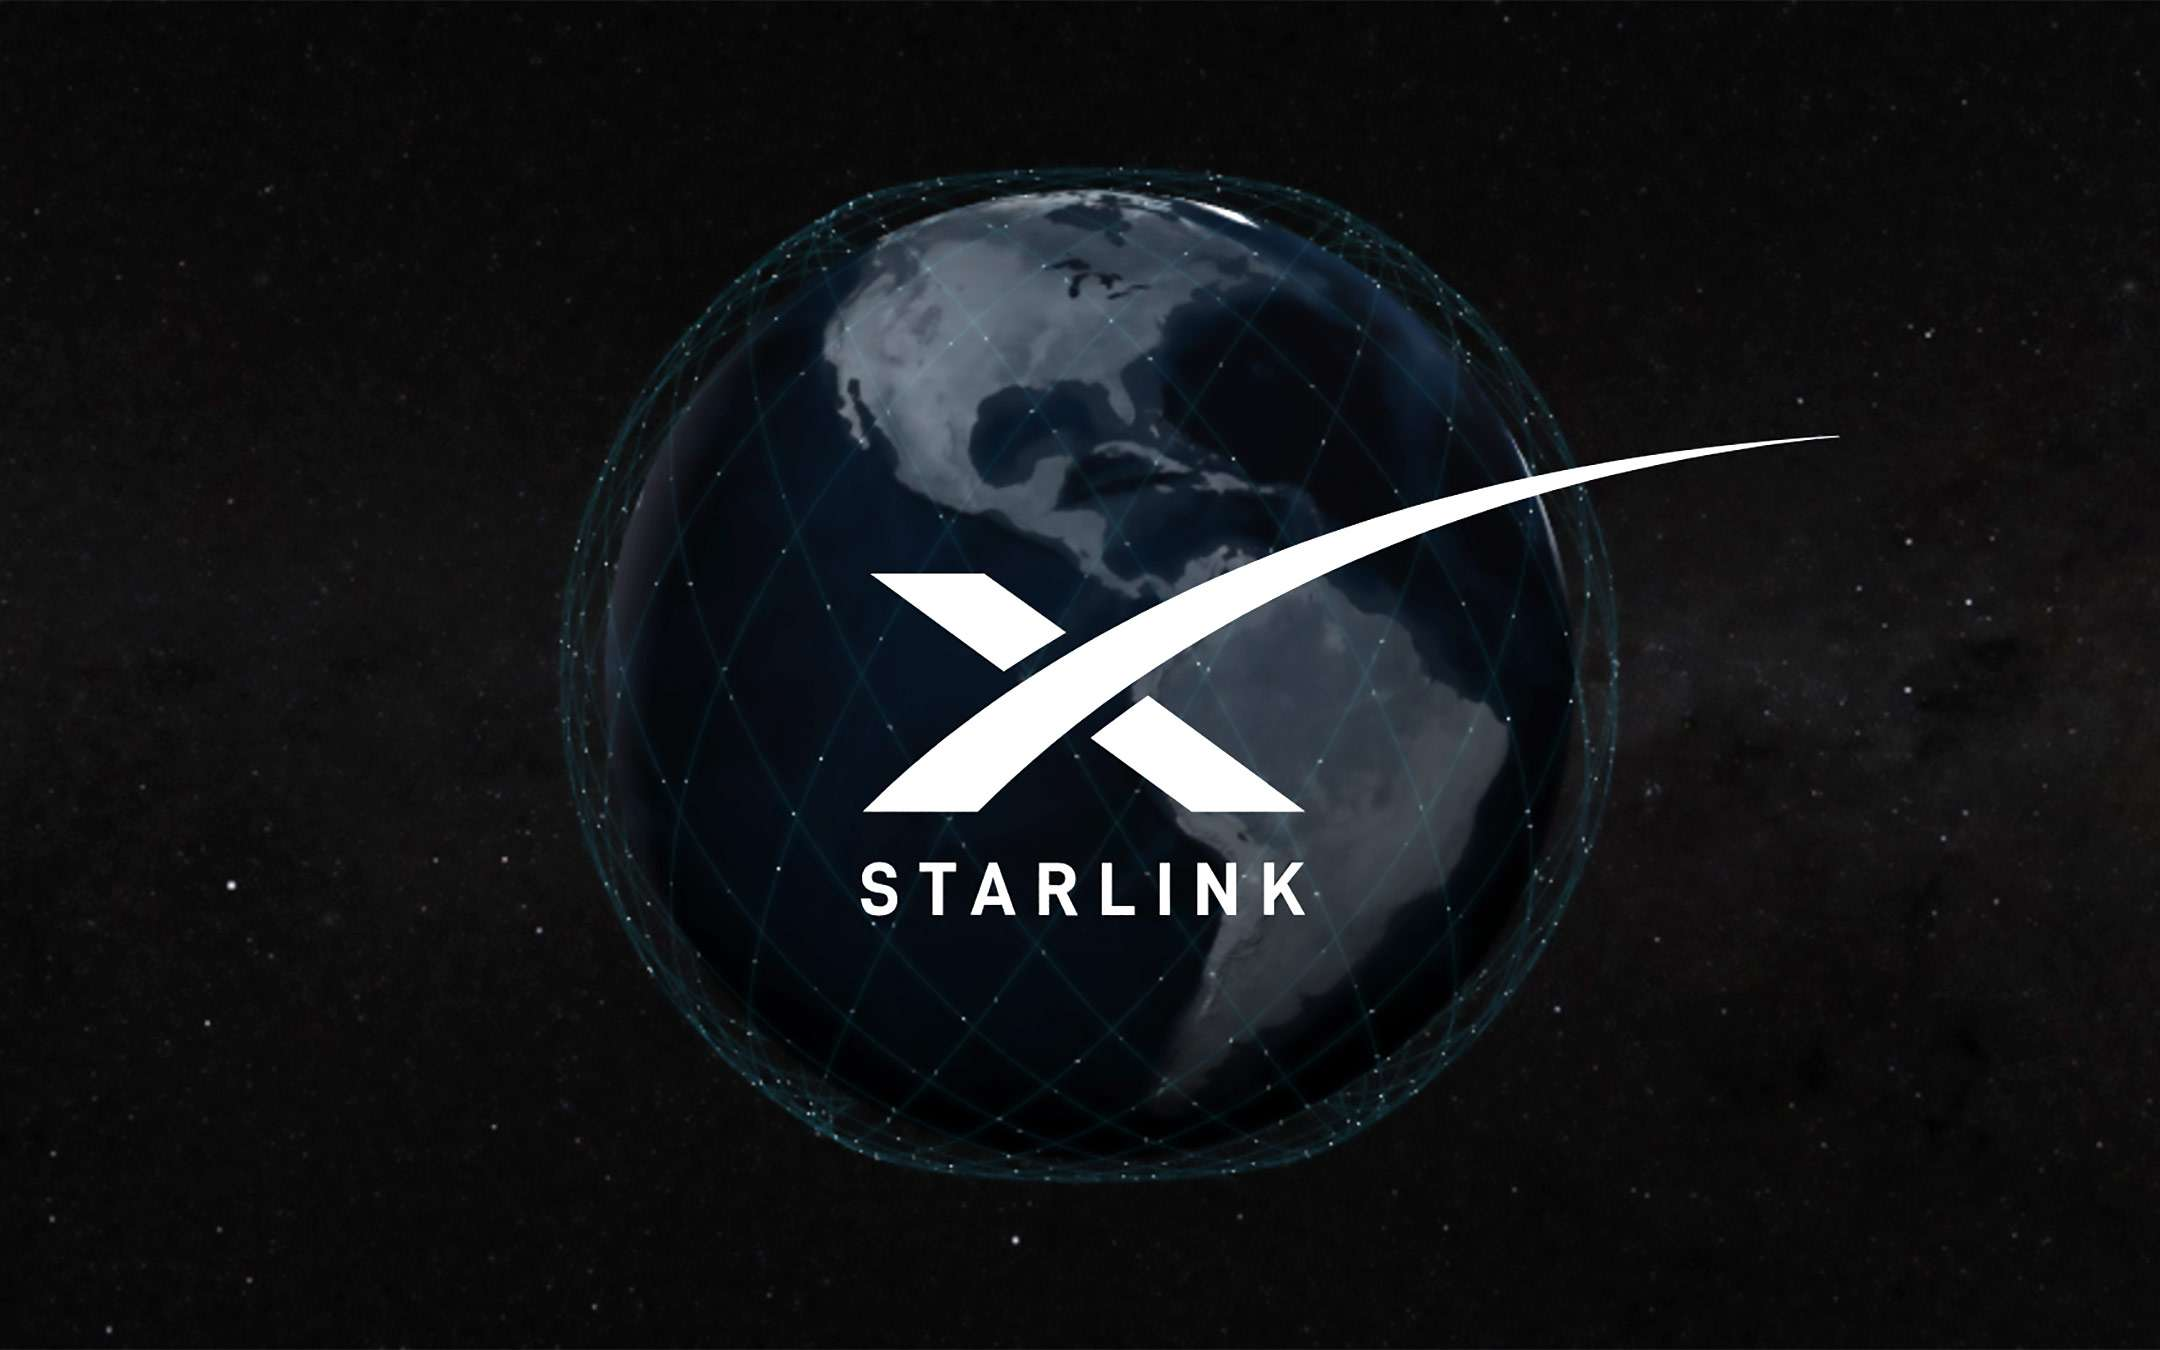 10,000 users already connected to Starlink satellites